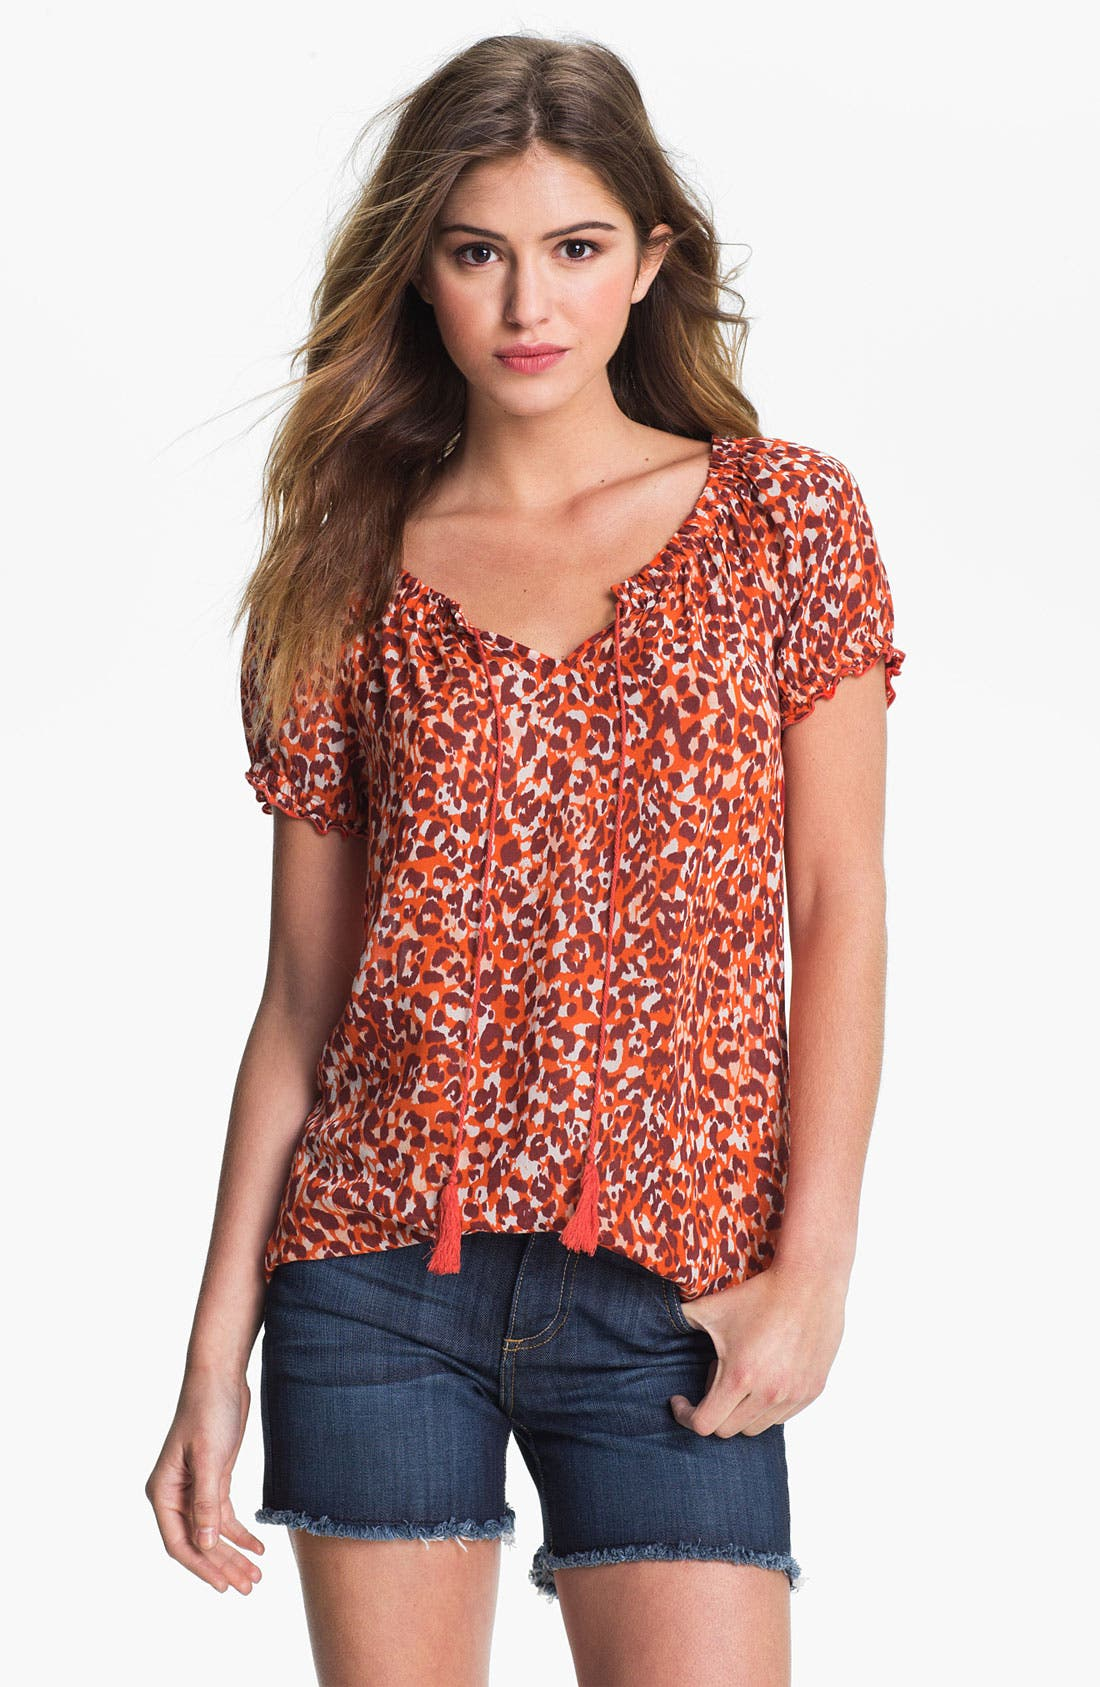 Alternate Image 1 Selected - Lucky Brand 'Safi - Mayan Cheetah' Blouse (Online Exclusive)